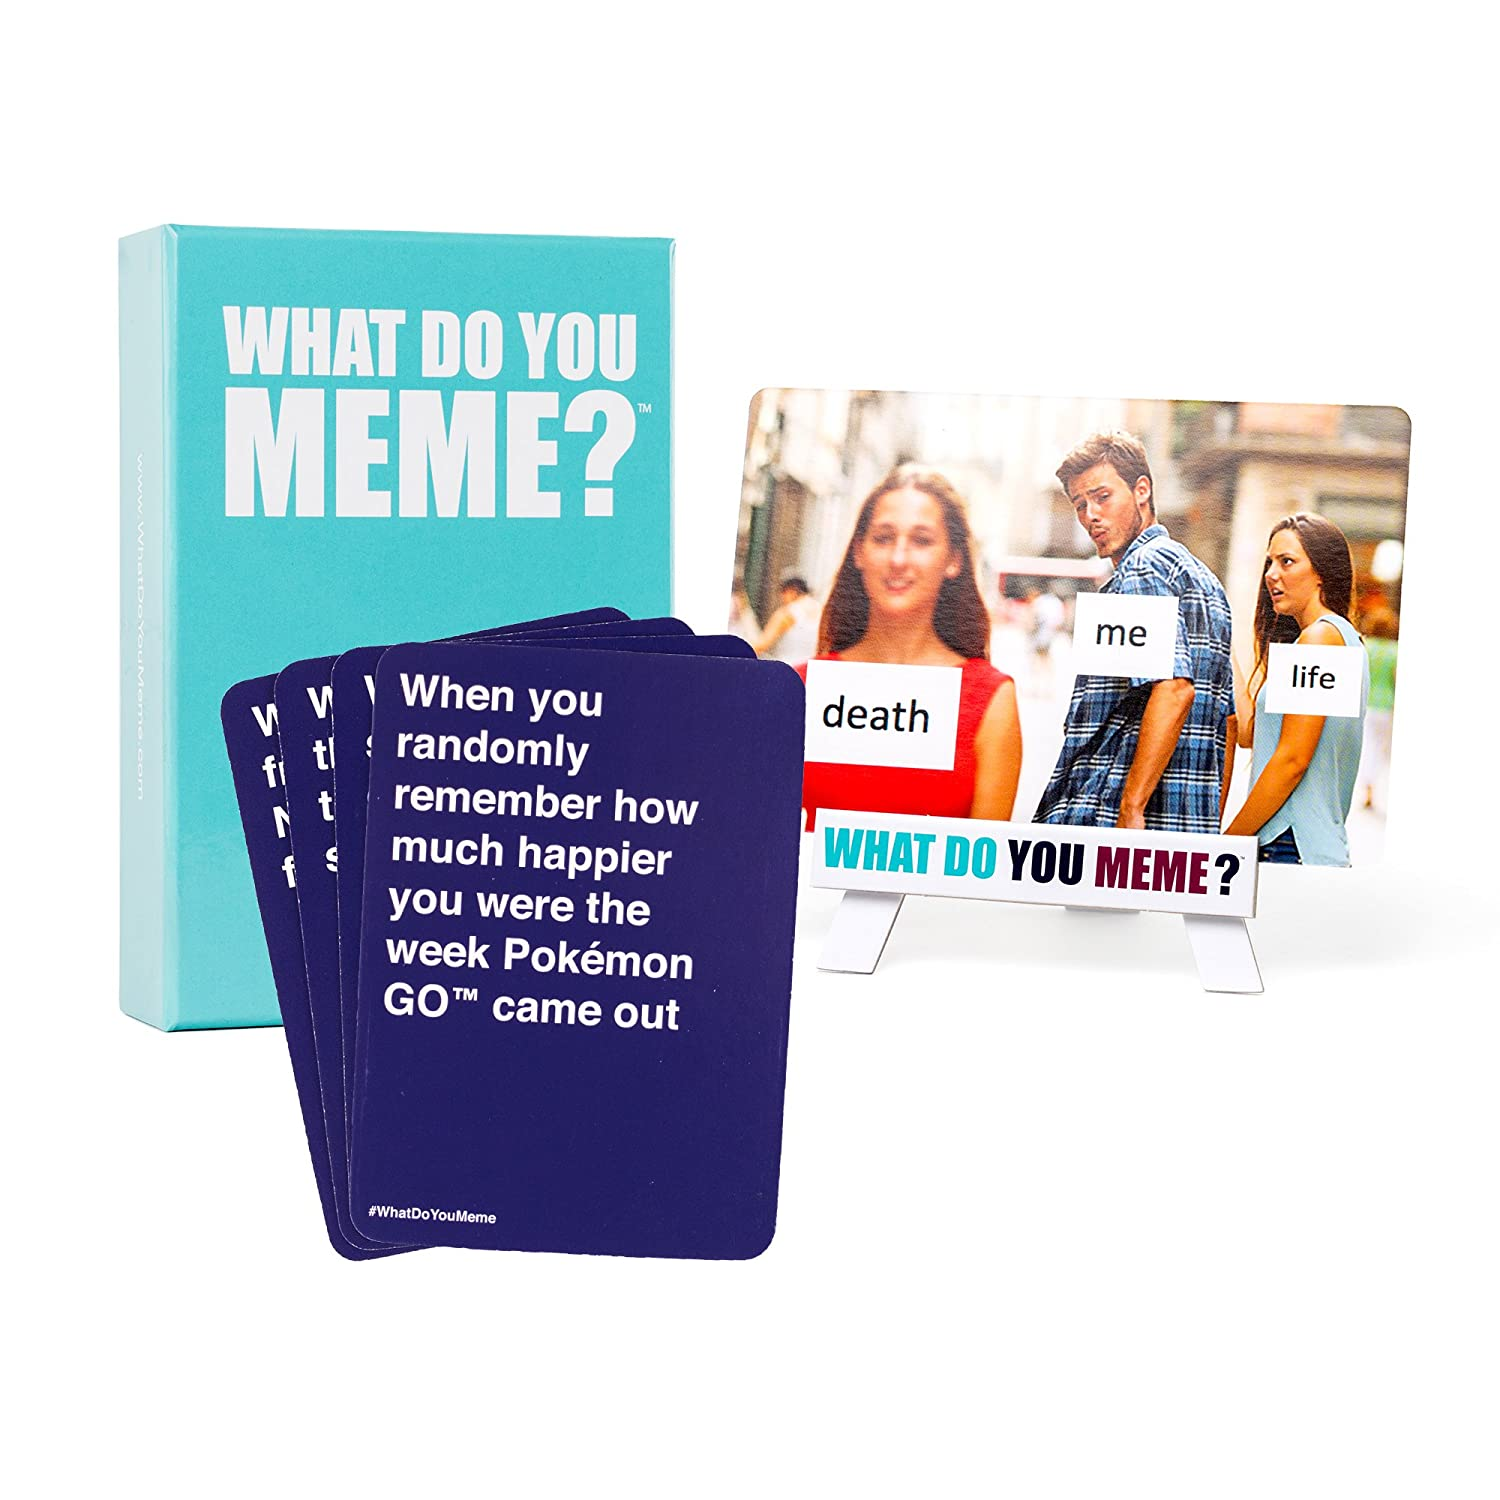 816iG DZnRL._SL1500_ amazon com what do you meme fresh memes expansion pack toys & games